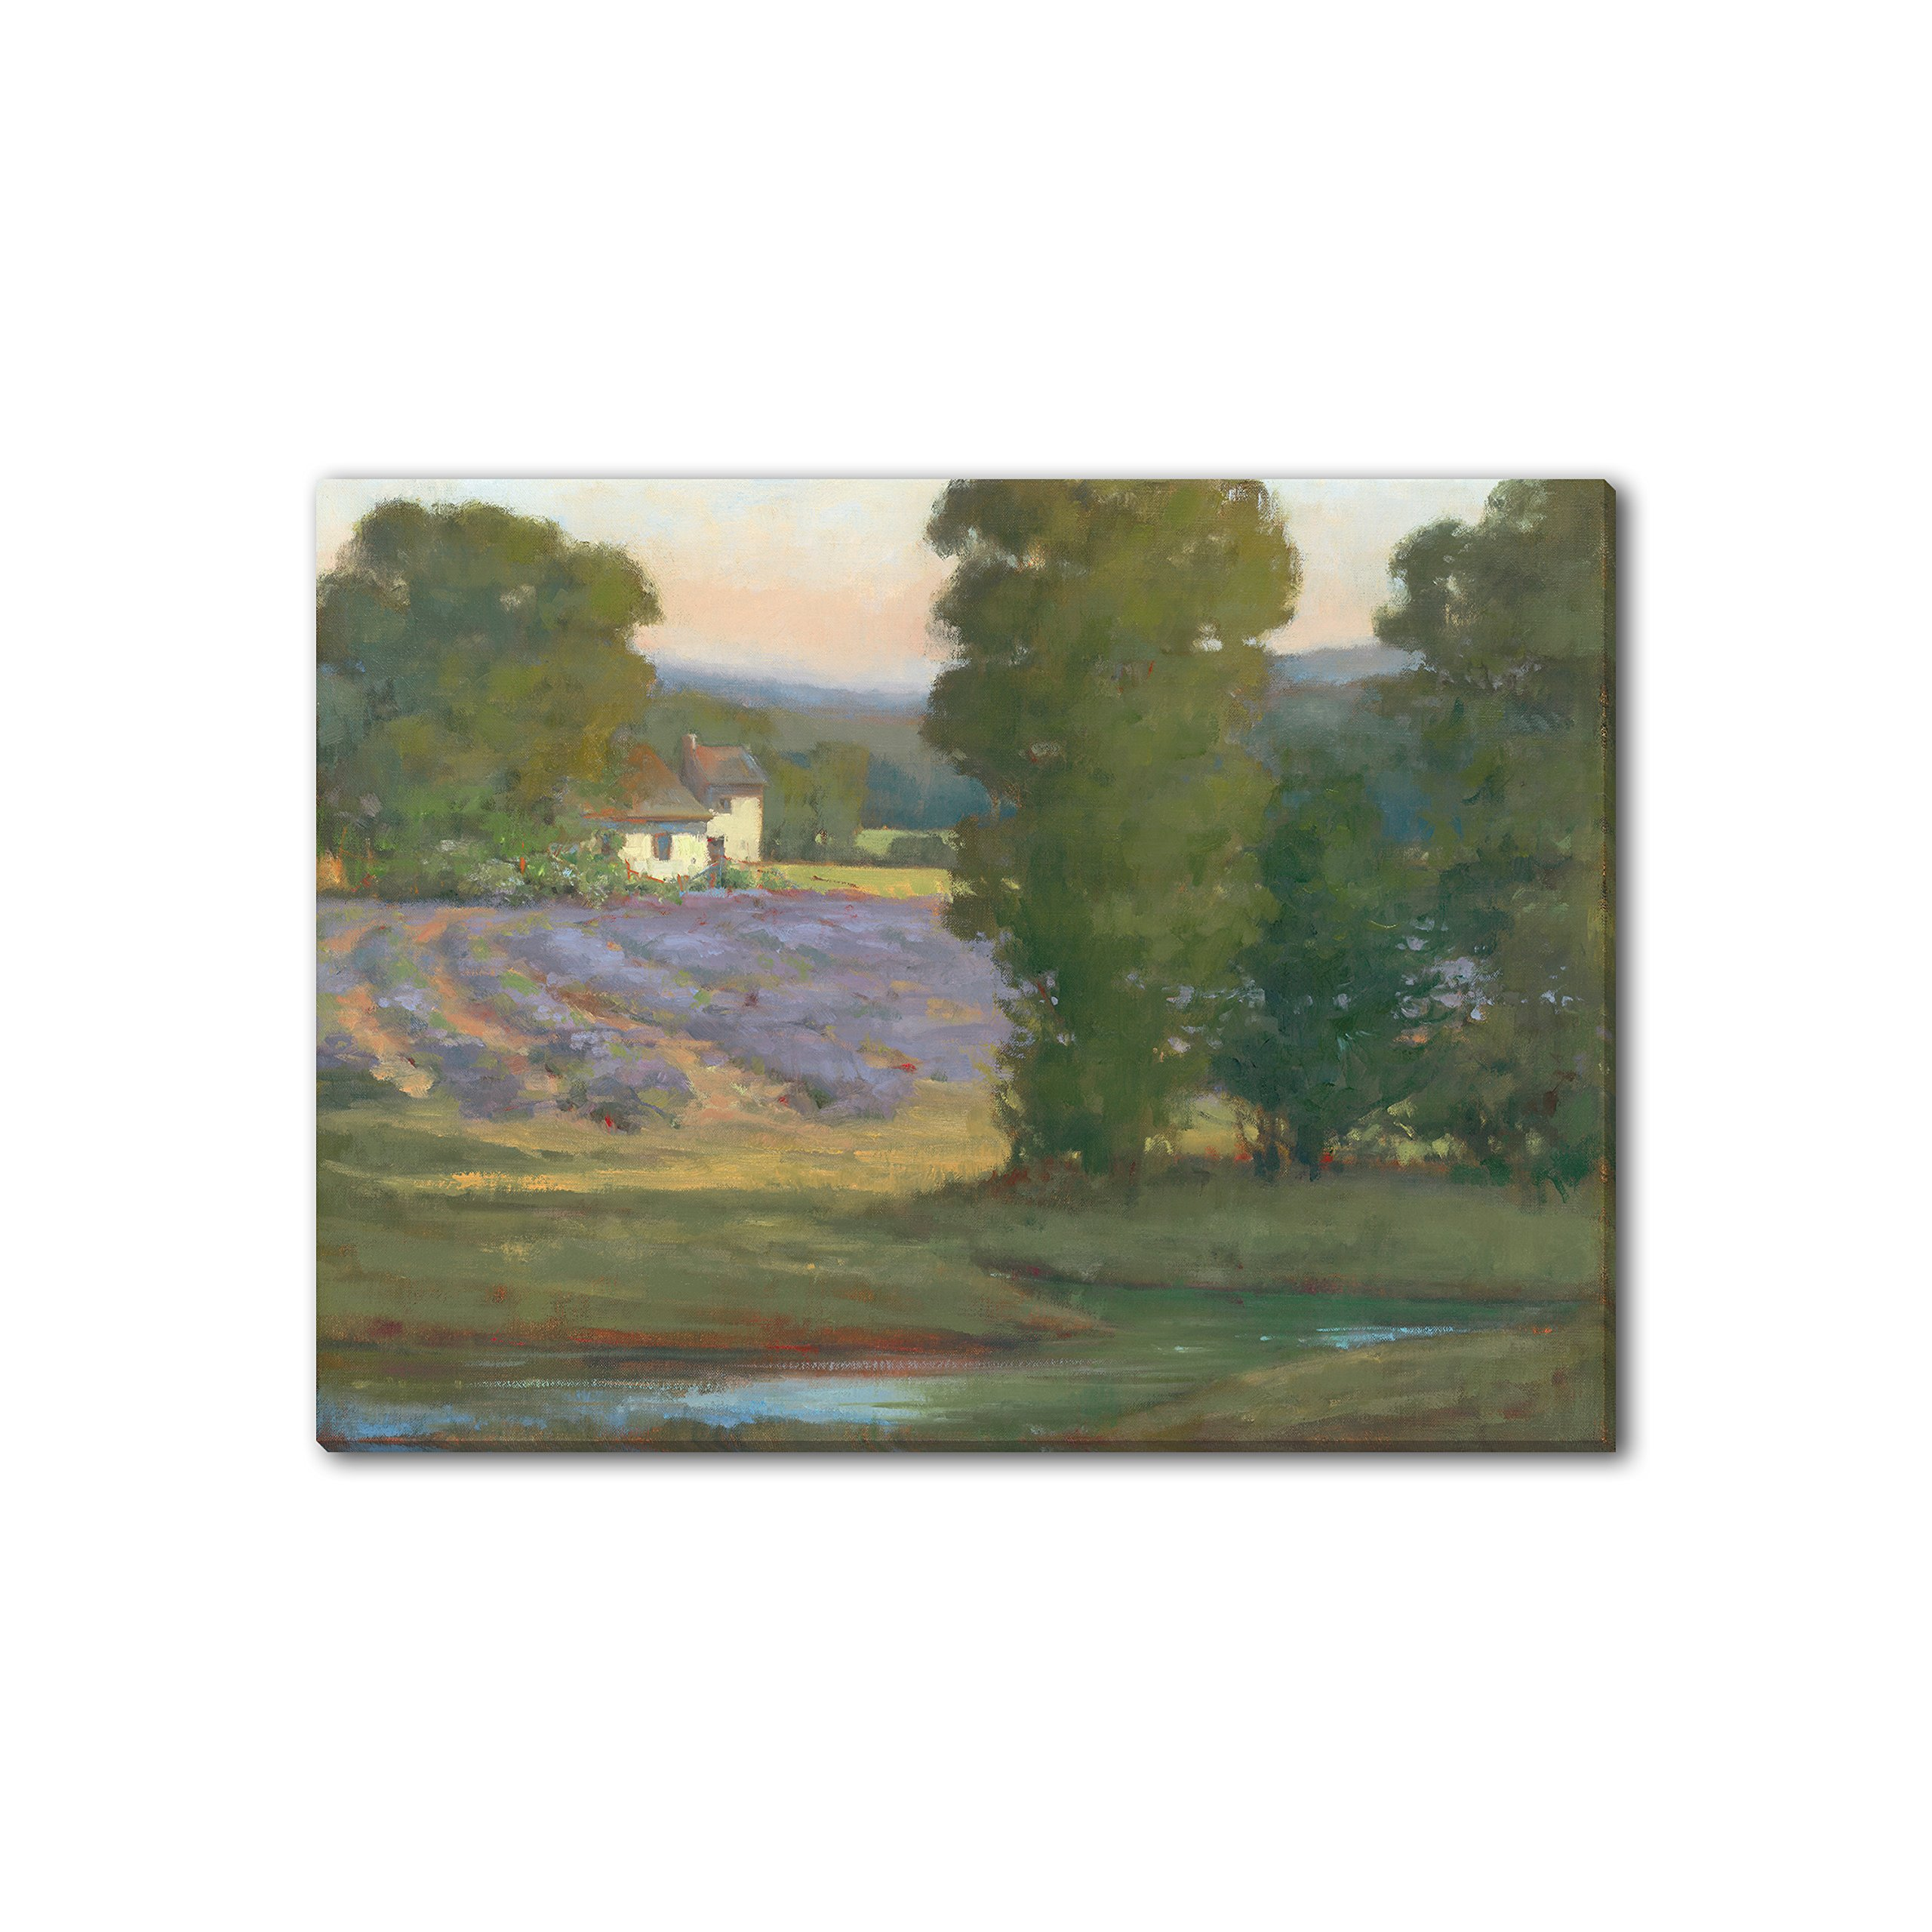 Gallery Direct 'Country Home' Canvas Gallery Wrap by Kim Coulter, 48 by 36-Inch